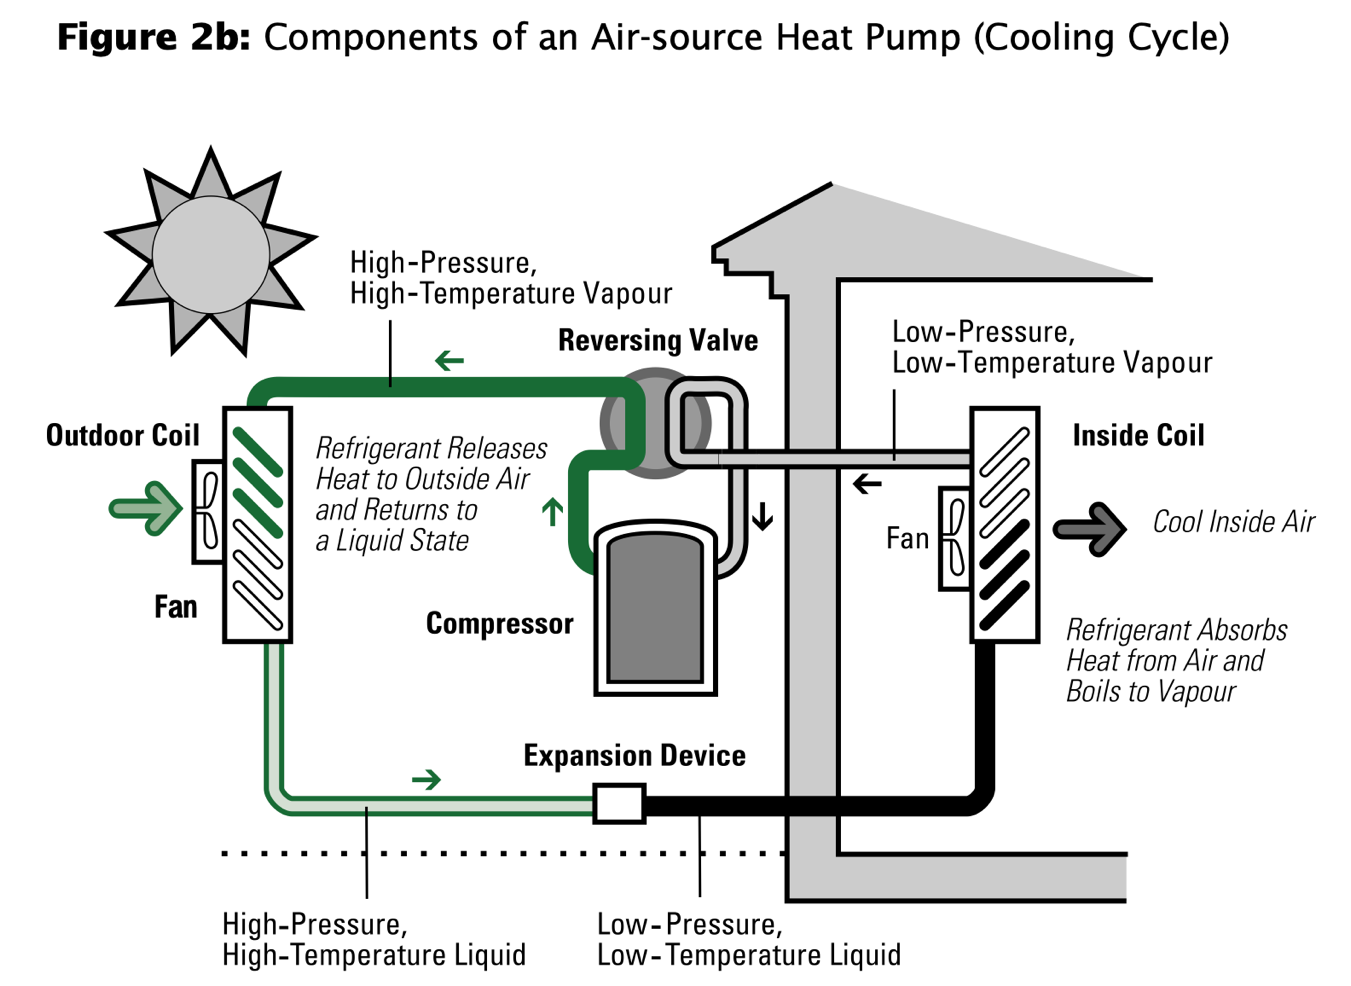 Infographic components of air-source heat pumping cooling cycle